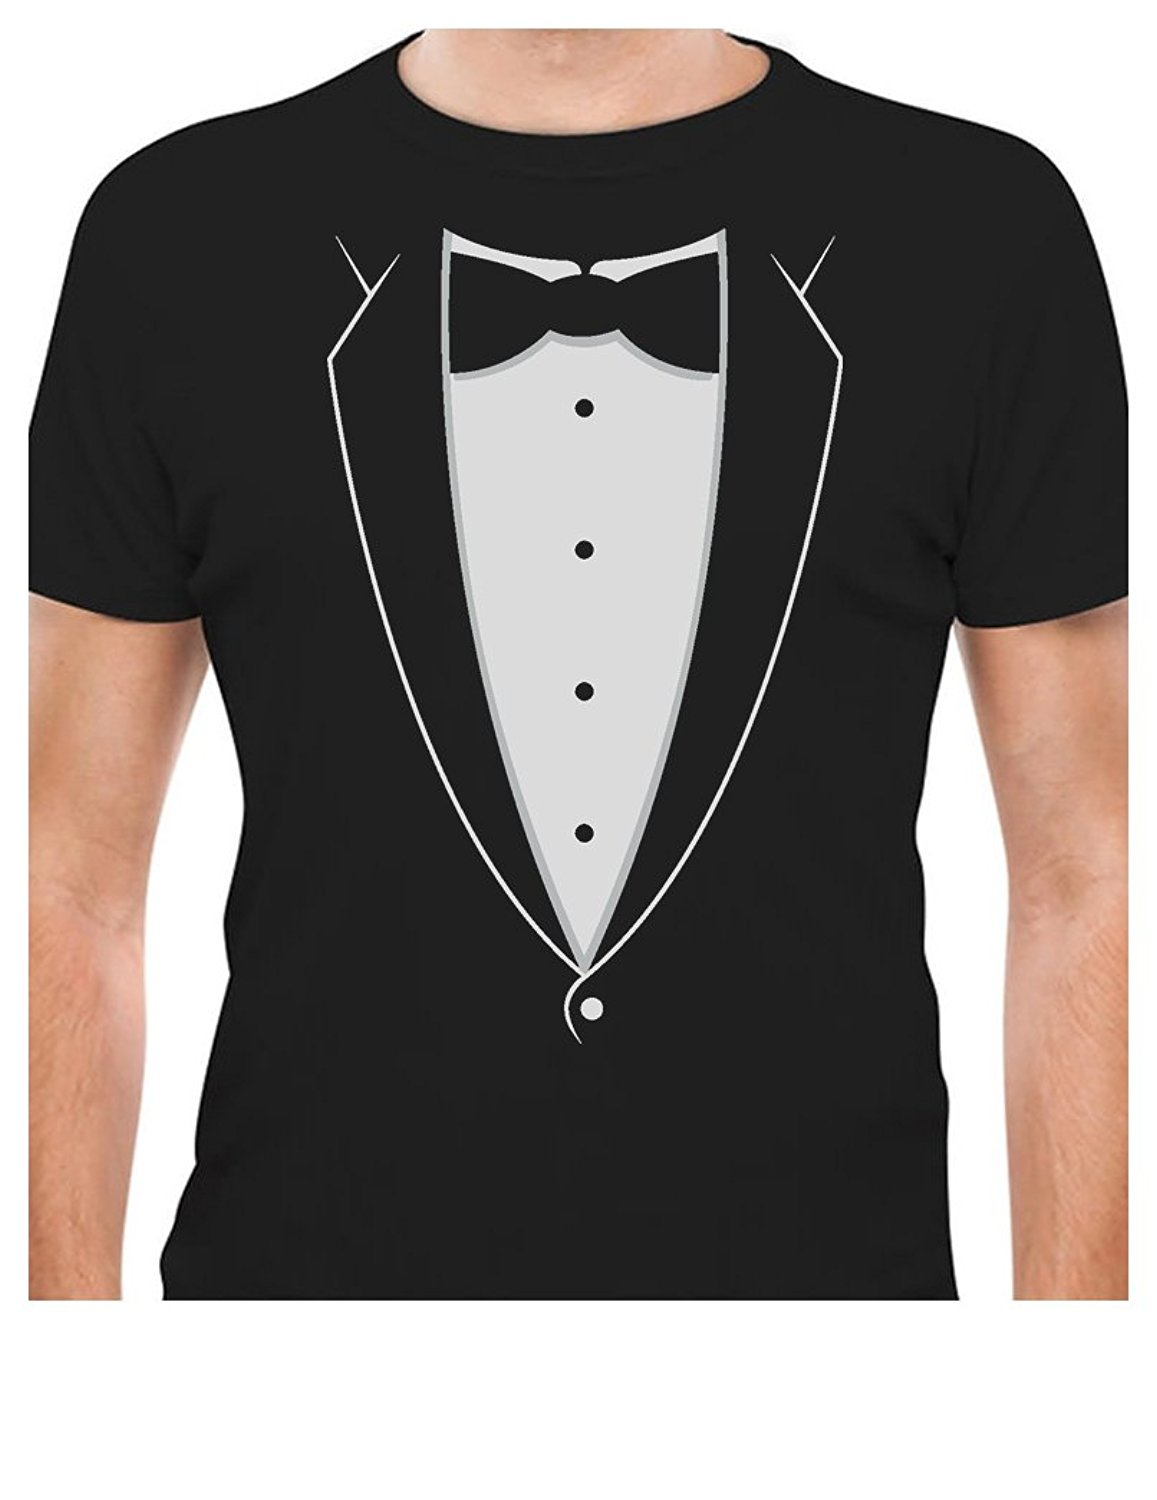 Screen t shirt crew neck short printed tuxedo with bowtie for Collar t shirt printing